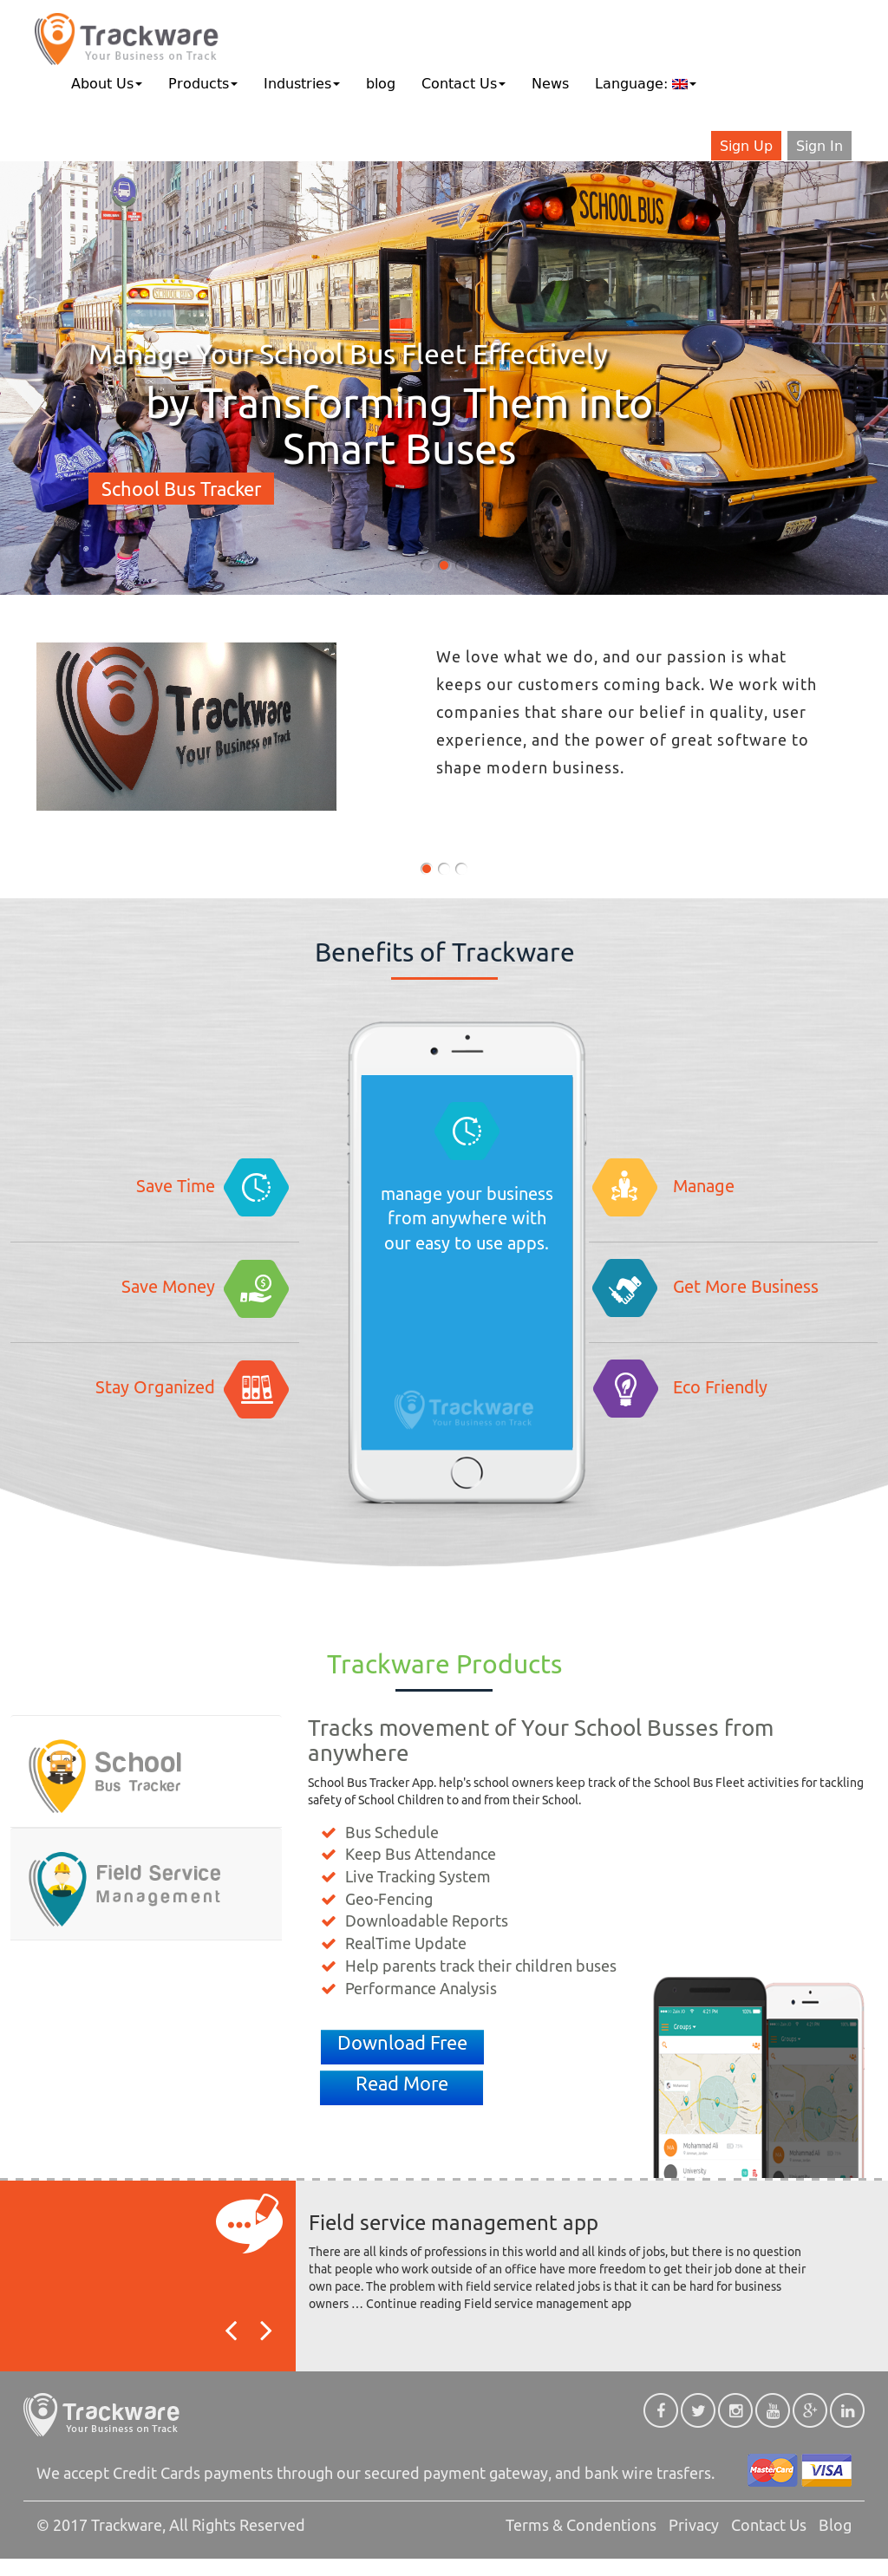 Trackware Competitors, Revenue and Employees - Owler Company Profile